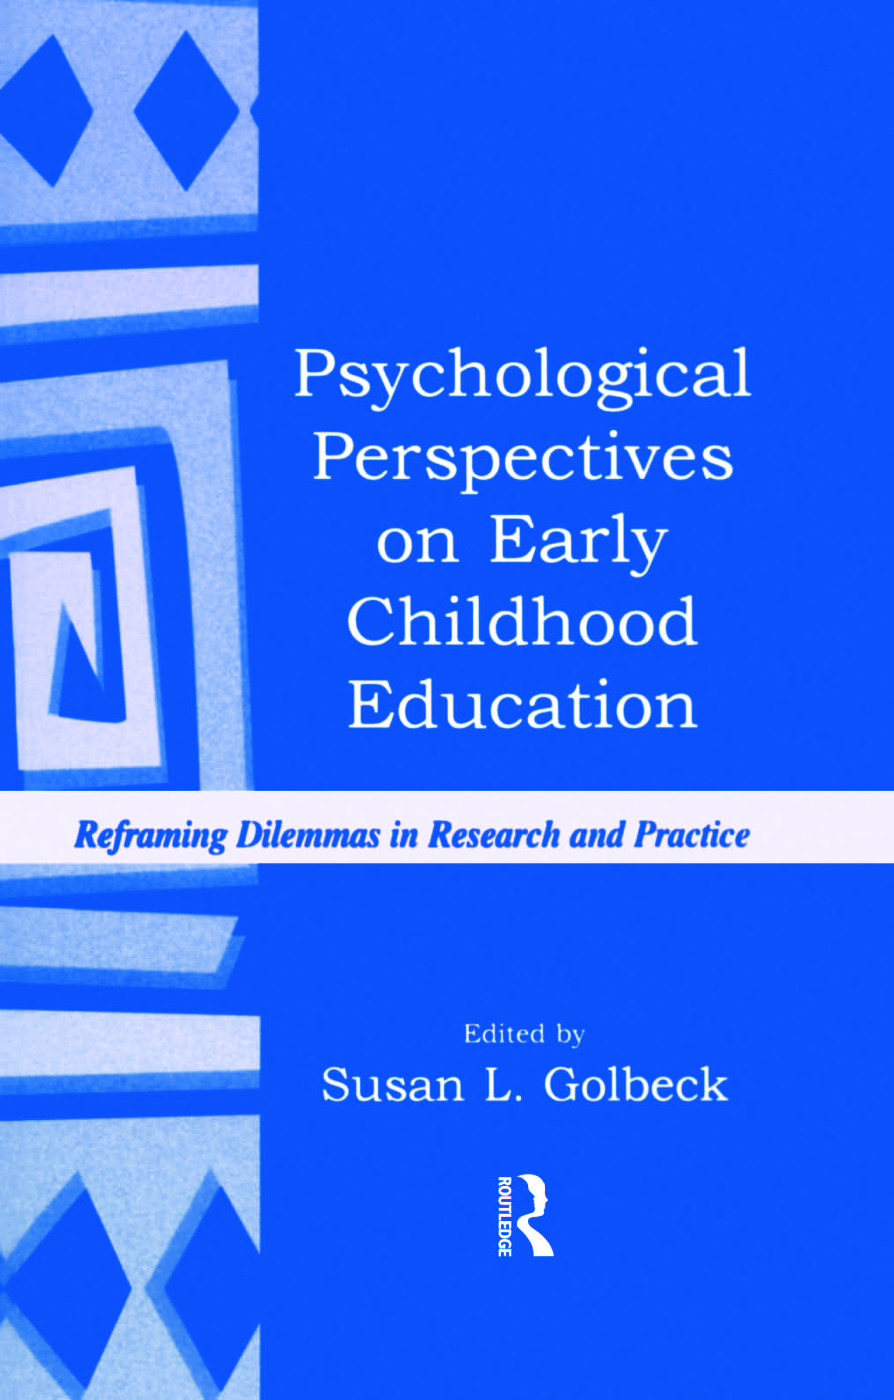 Psychological Perspectives on Early Childhood Education: Reframing Dilemmas in Research and Practice book cover